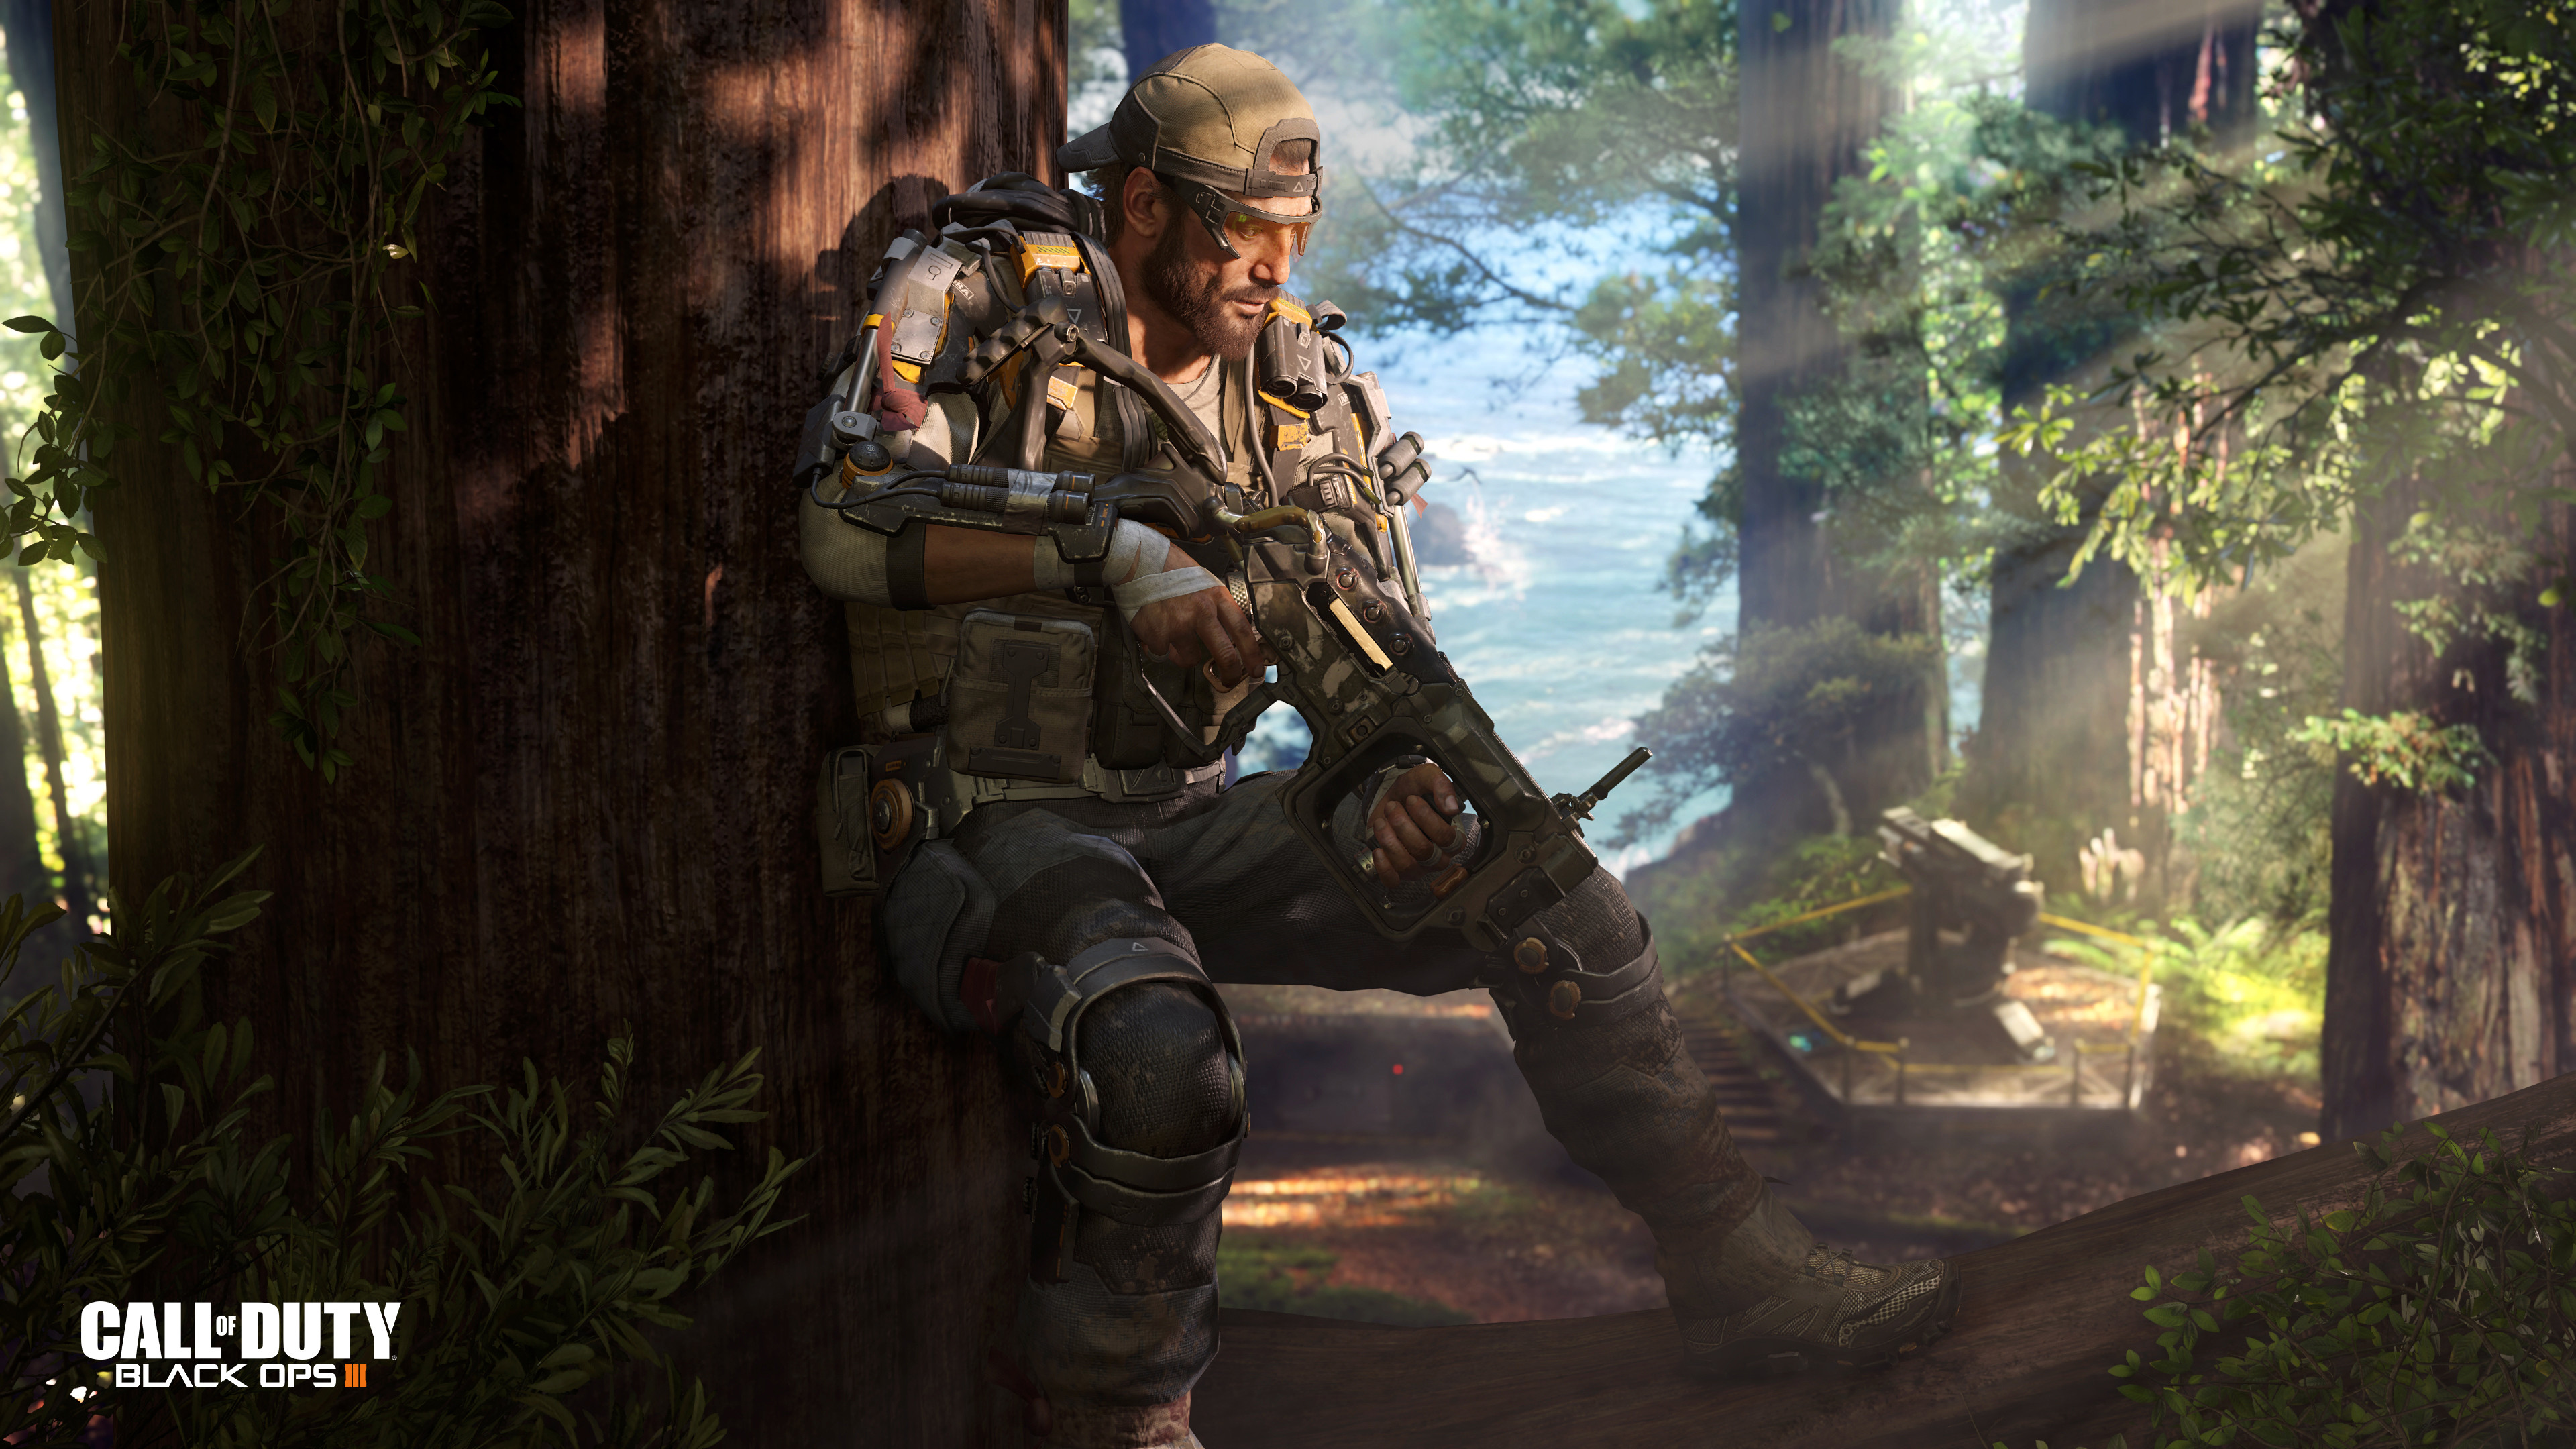 Res: 3840x2160, Call of Duty Black Ops 3 Specialist Nomad Wallpapers HD Wallpapers